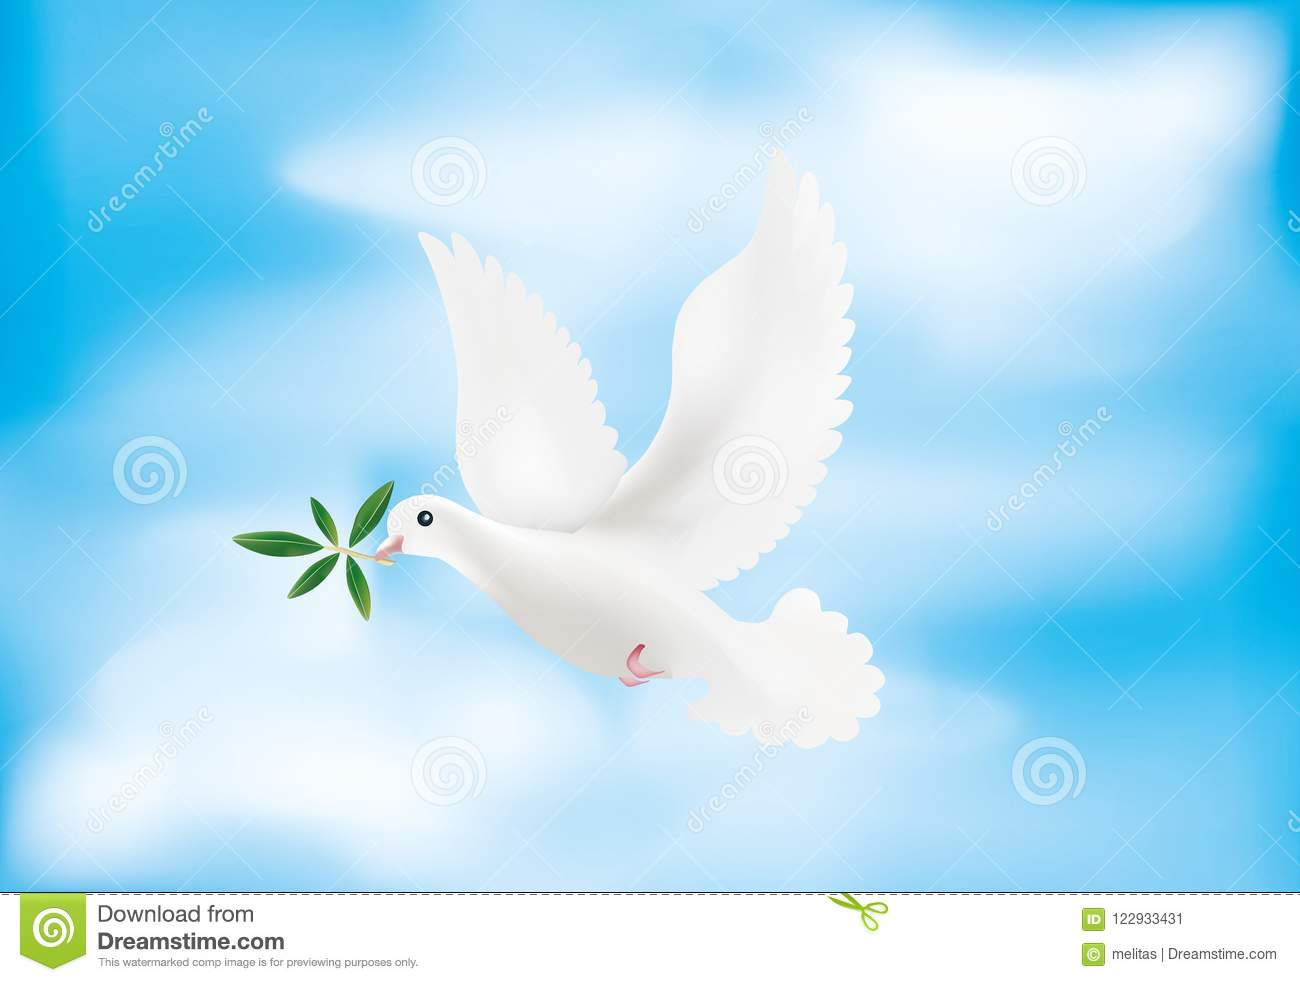 3d Illustration With Dove And Olive Branch With Sky Background Symbol Of Peace Stock Illustration Illustration Of Sign Noah 122933431